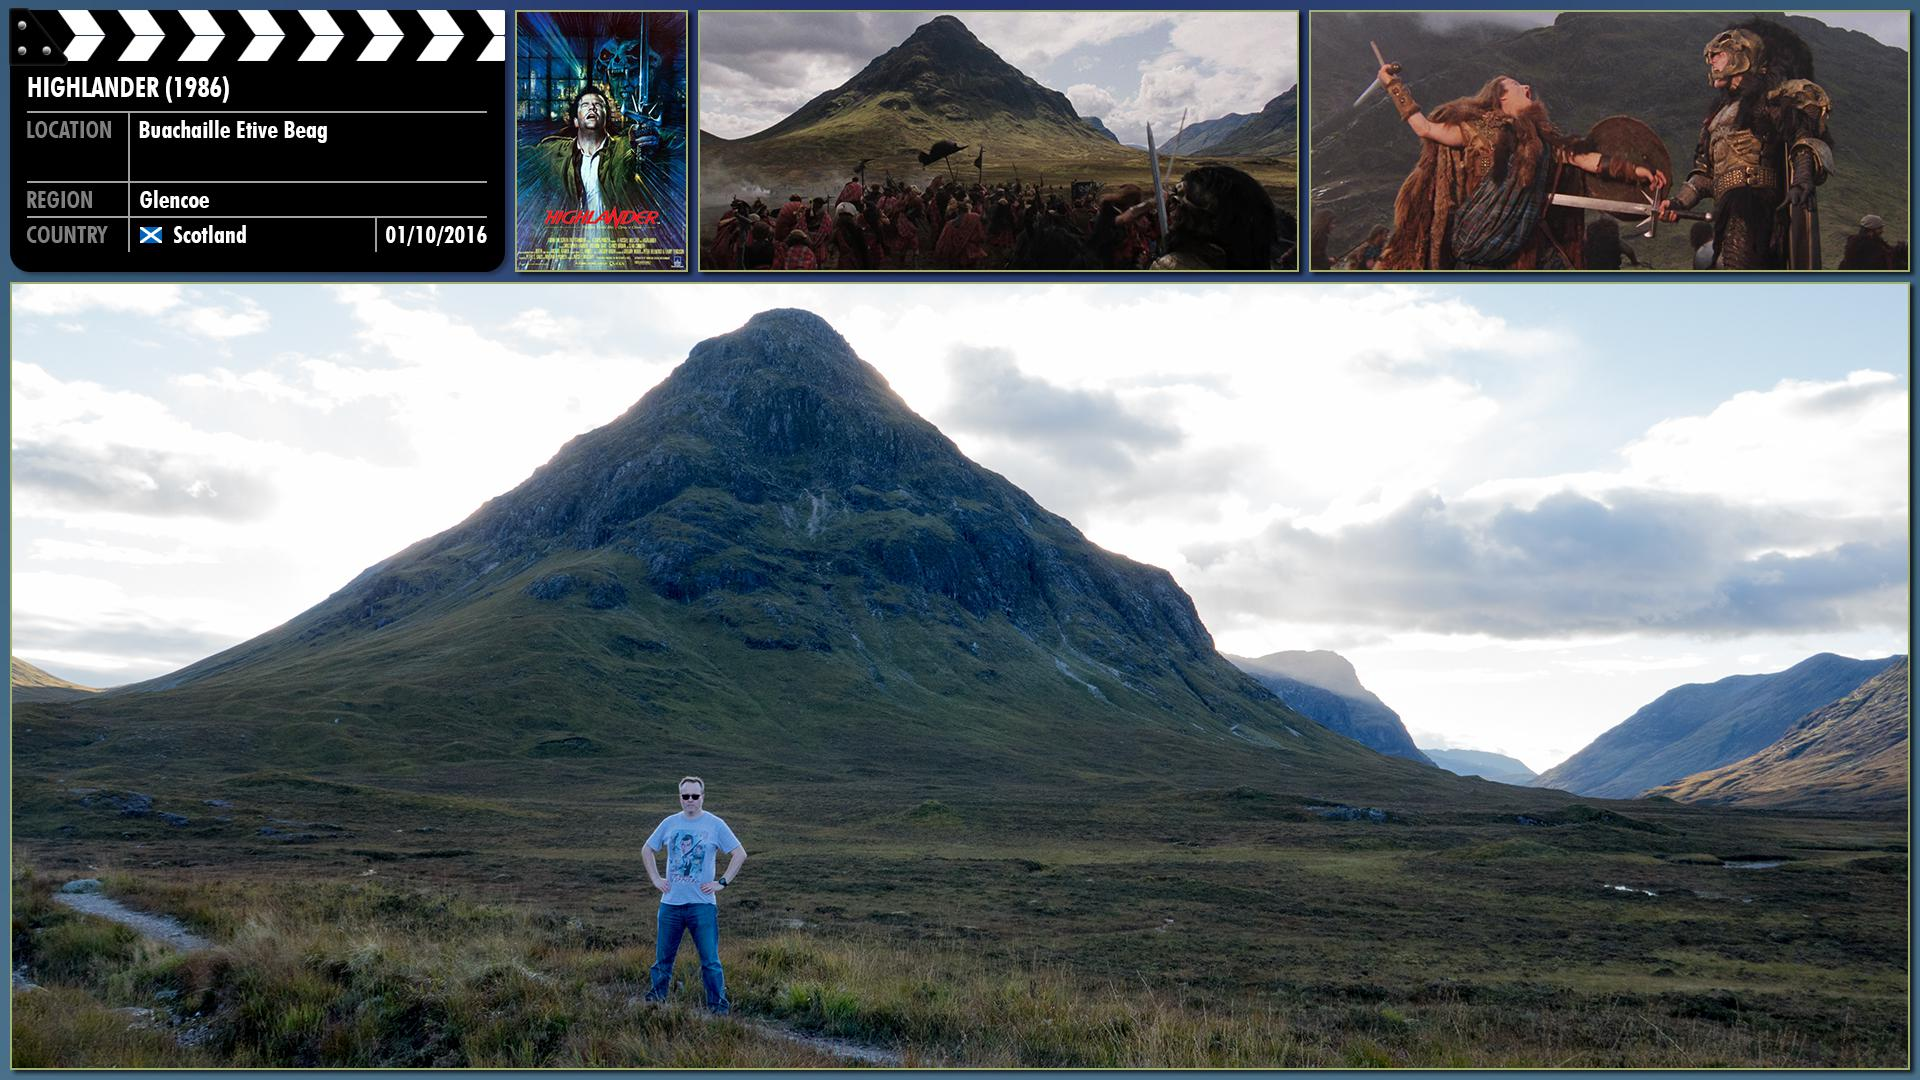 Filming location photo for Highlander (1986) 1 of 8